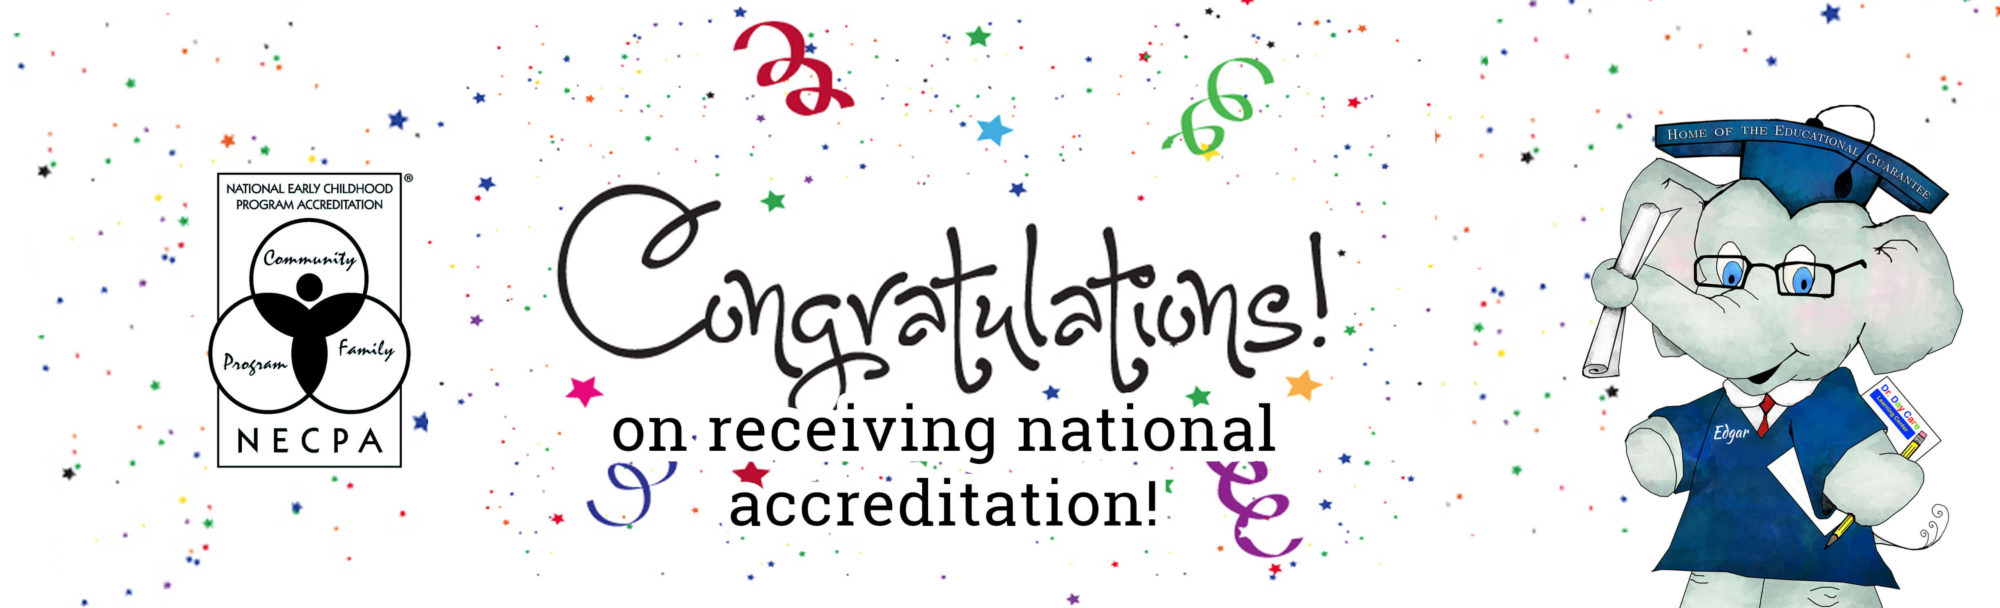 Congratulations DDC Providence on earning National Accreditation!